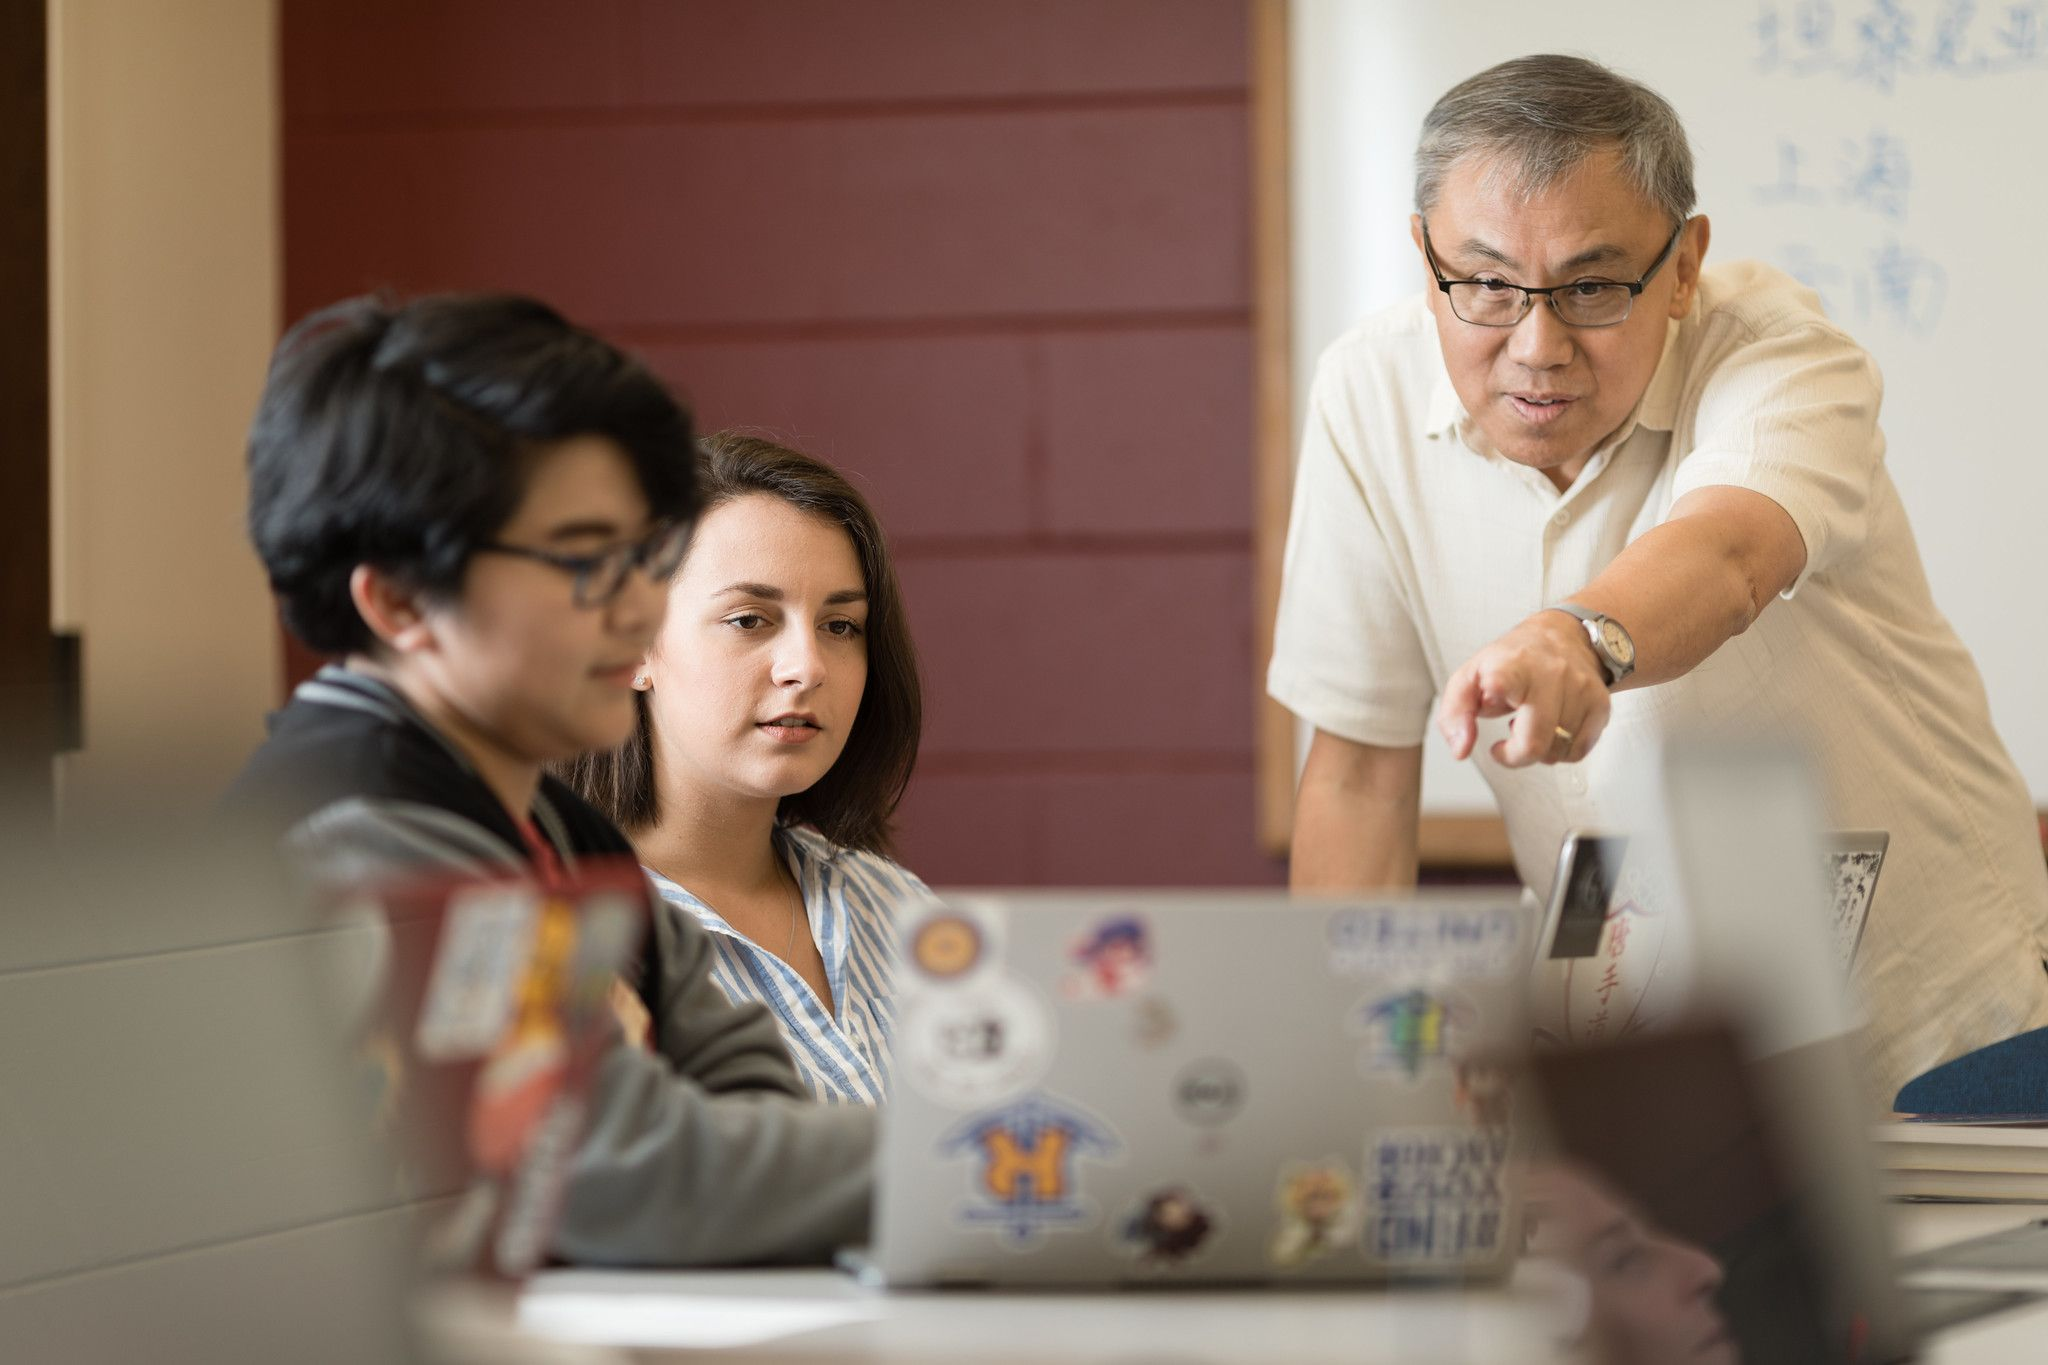 Rollins professor Li Wei engaging his students in discussion.